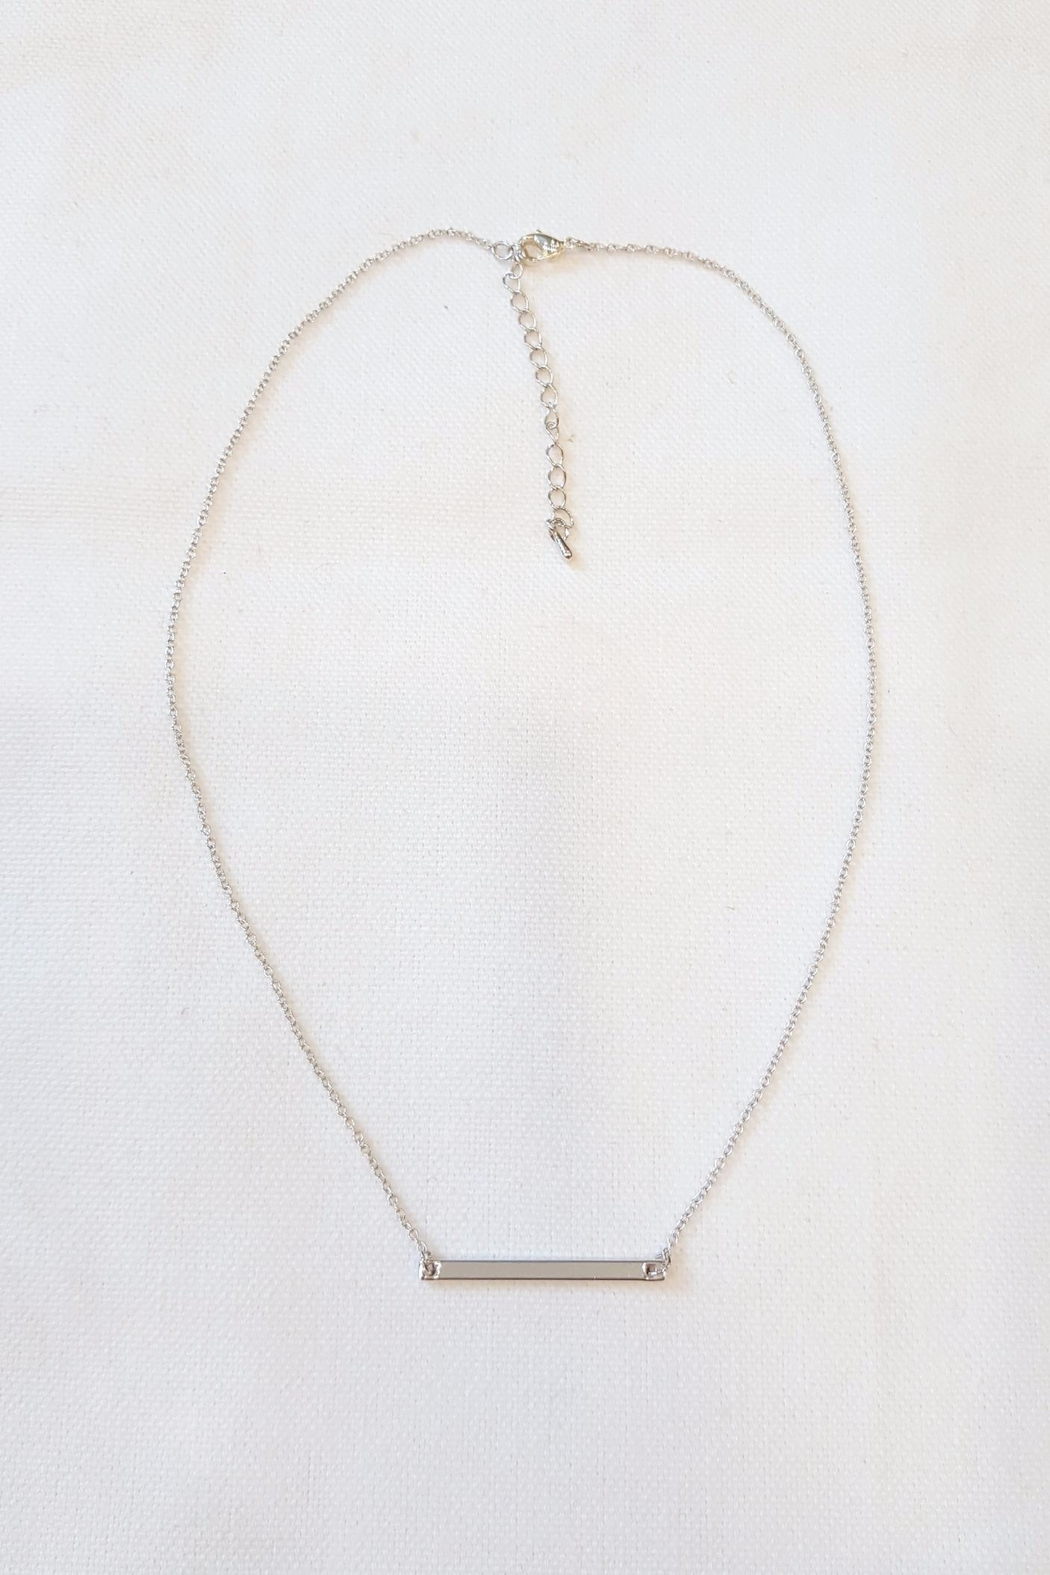 Simply Chic Silver Bar Necklace - Main Image